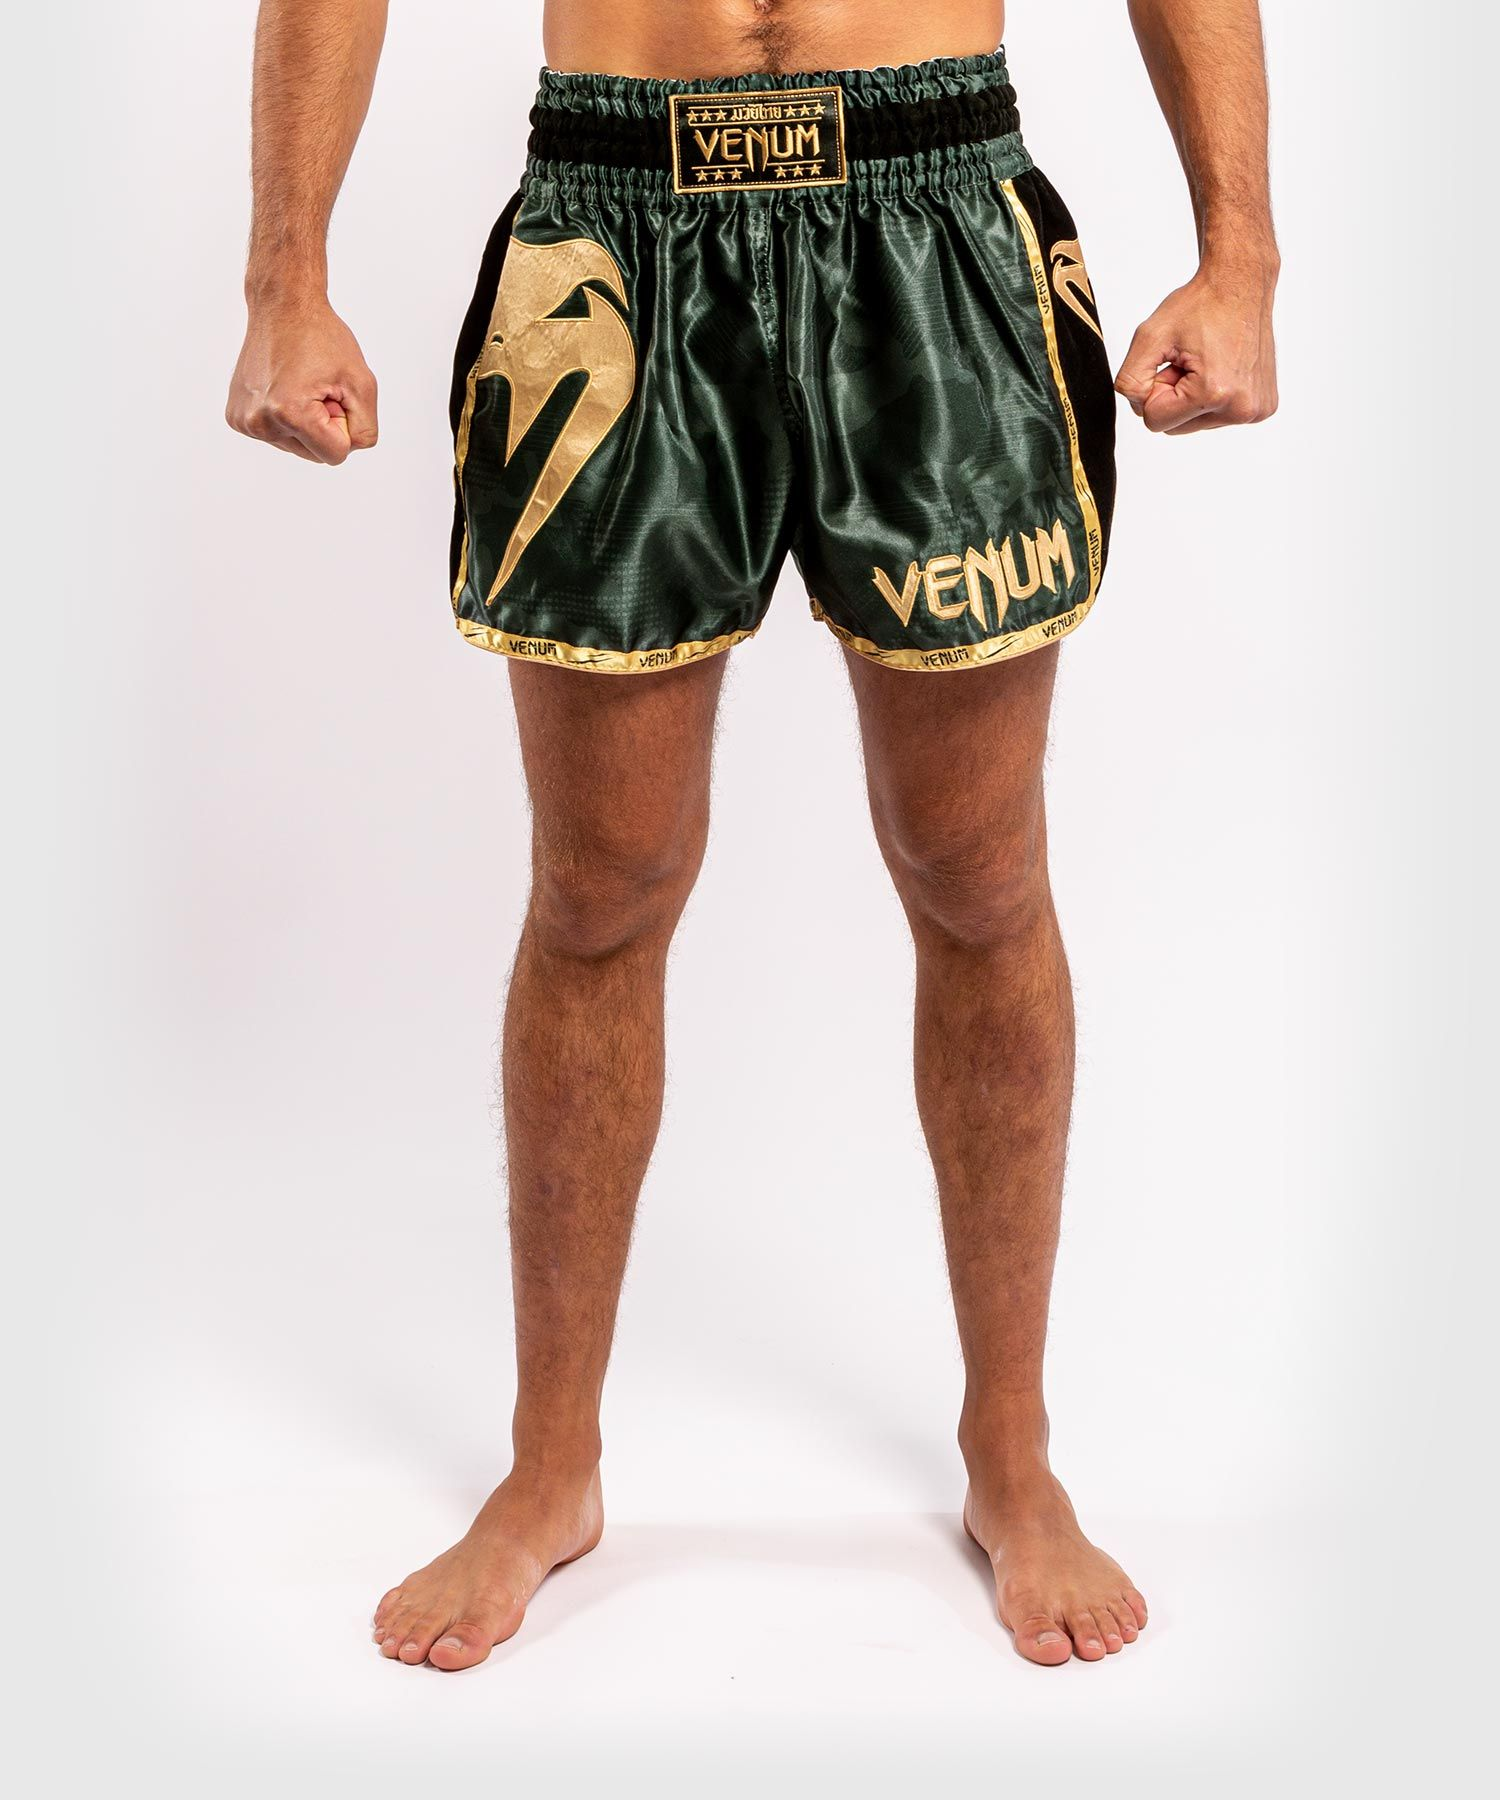 Venum Giant Camo Muay Thai Shorts - Khaki/Gold